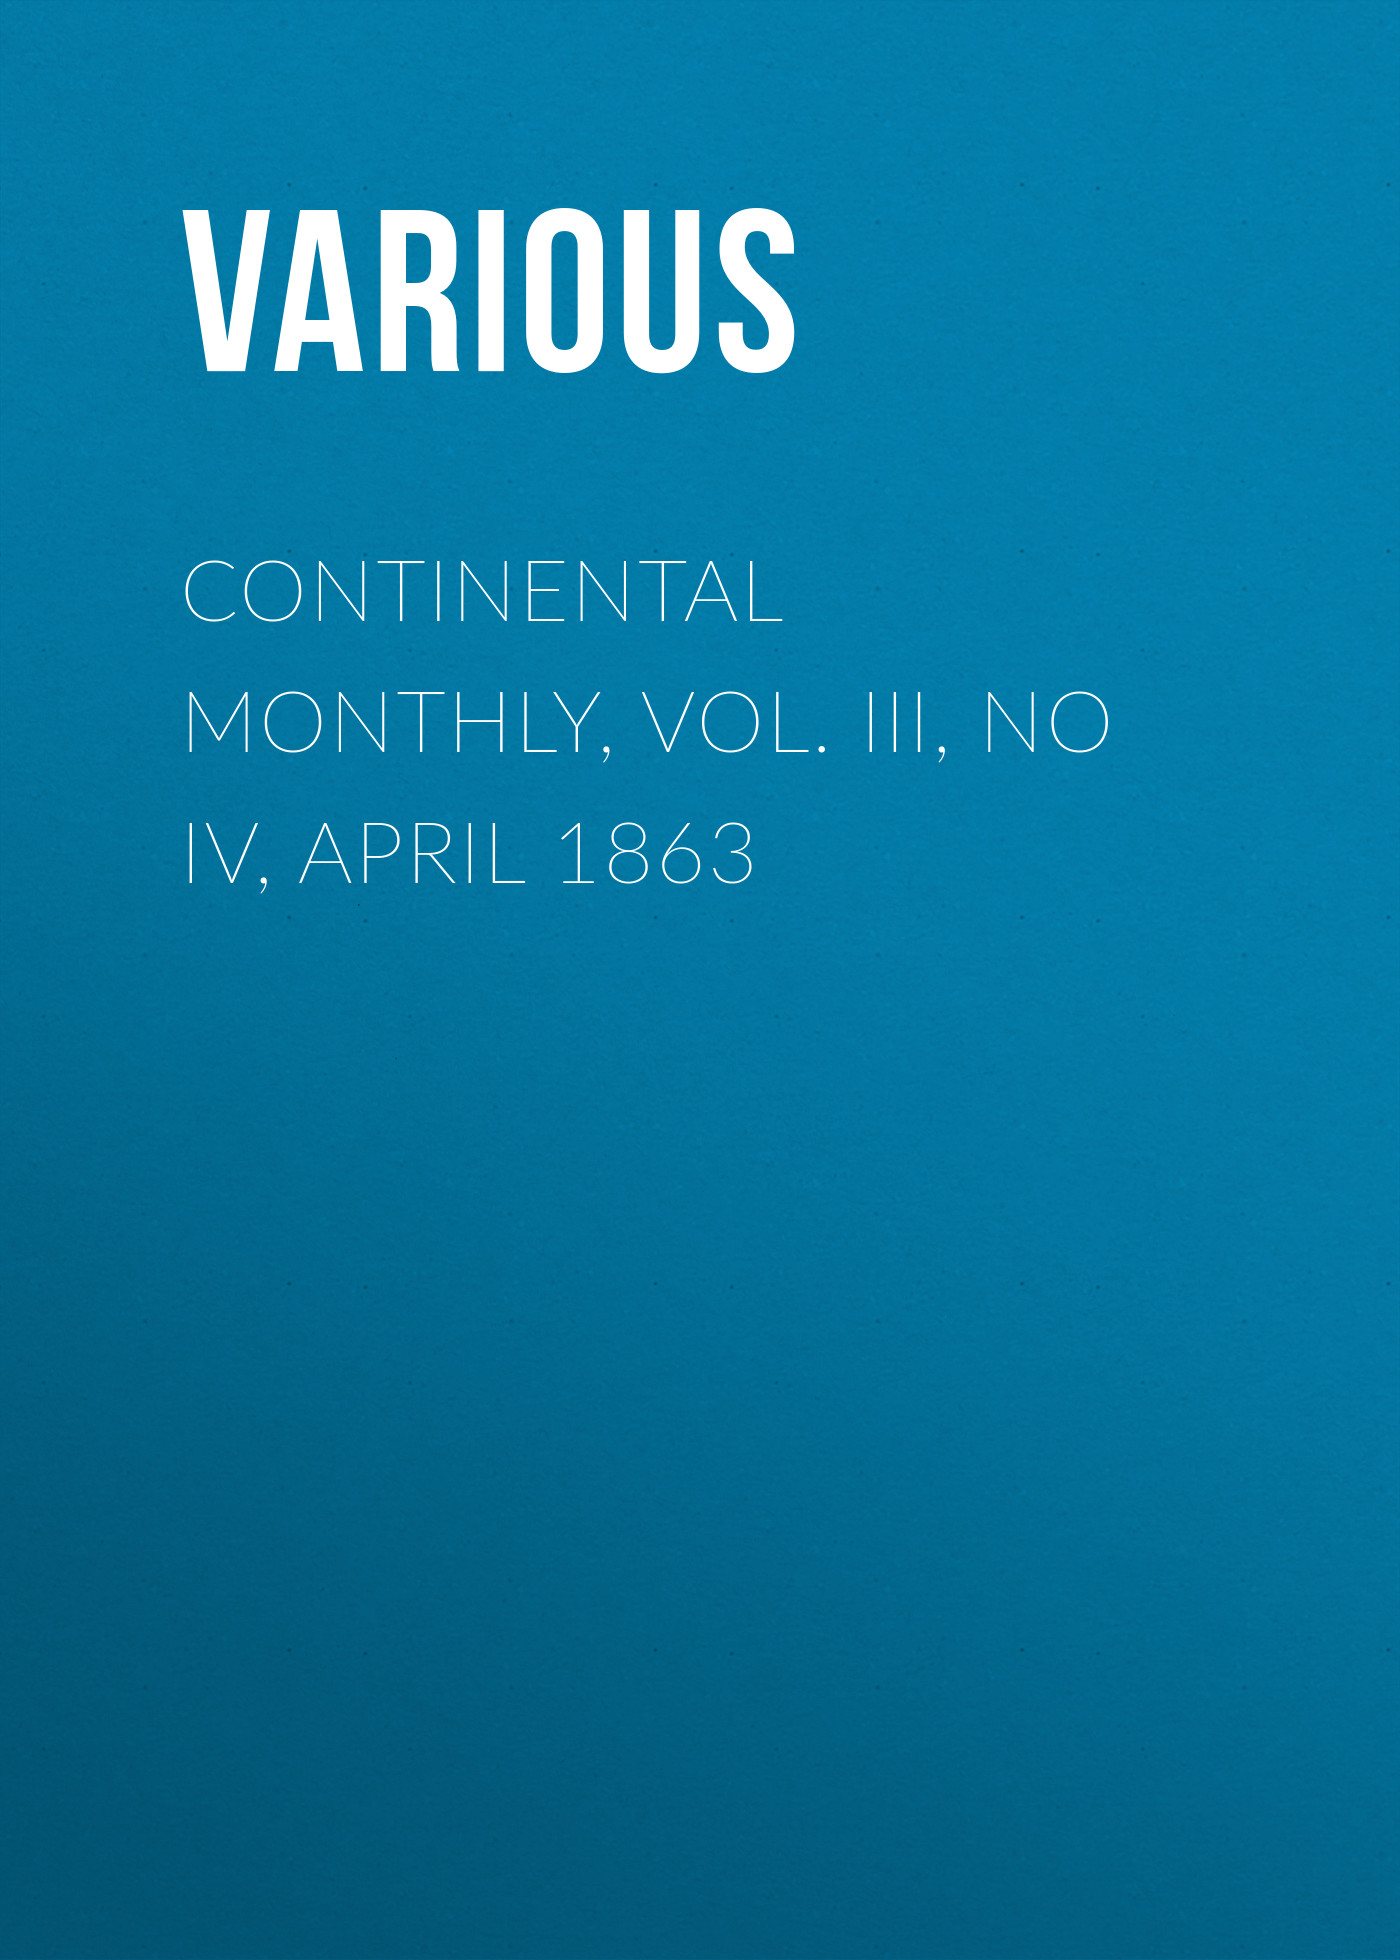 Фото - Various Continental Monthly, Vol. III, No IV, April 1863 various harper s new monthly magazine no xxiii april 1852 vol iv